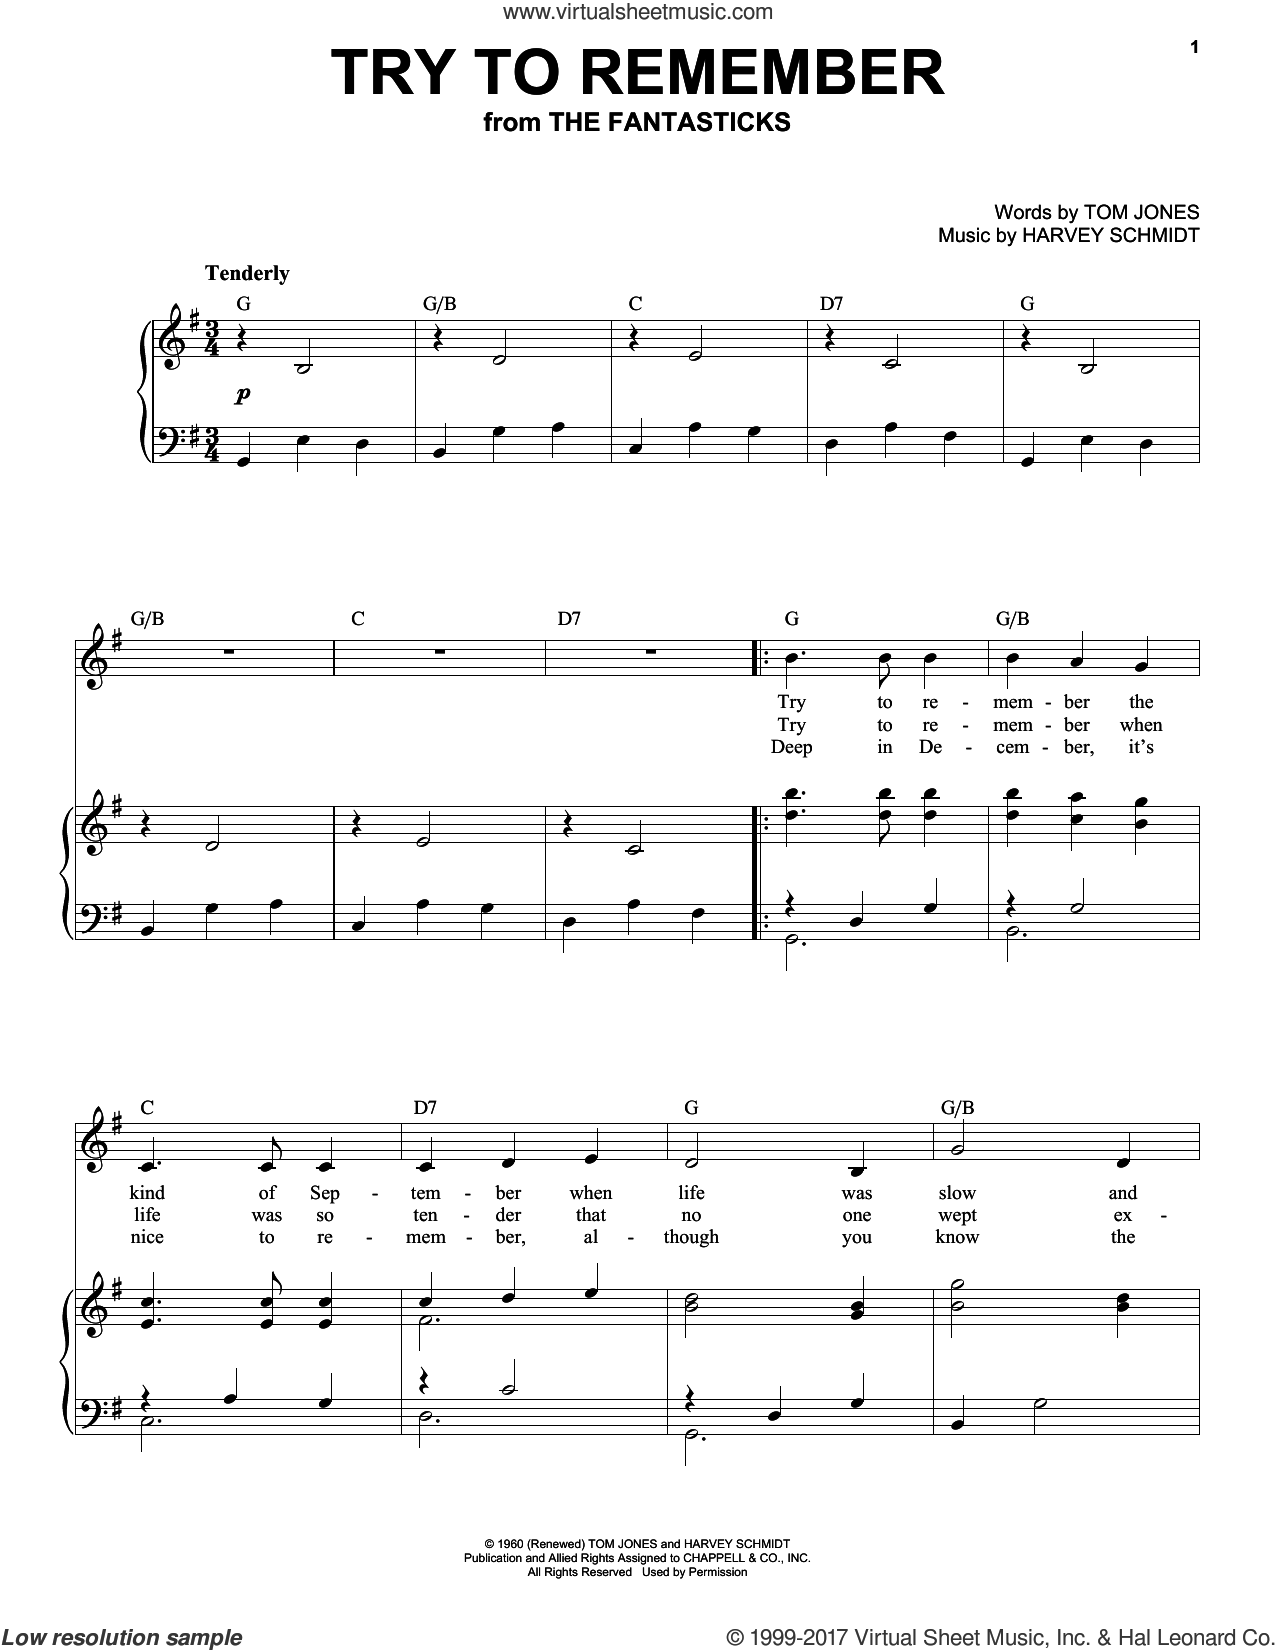 Try To Remember sheet music for voice and piano (High Voice) by Tom Jones and Harvey Schmidt, intermediate skill level